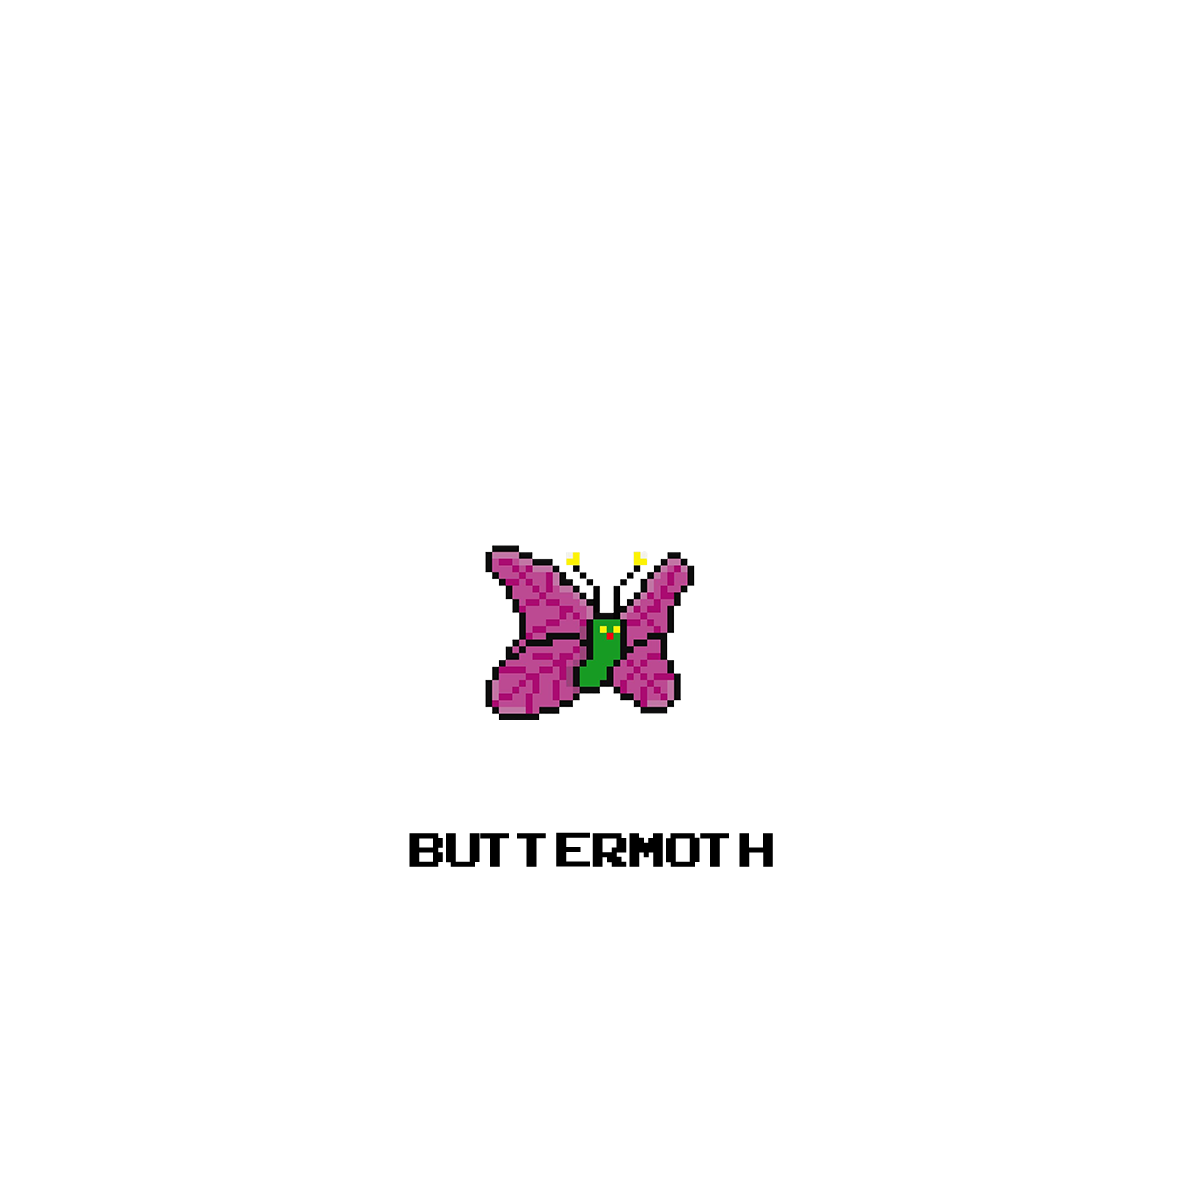 buttermoth.png